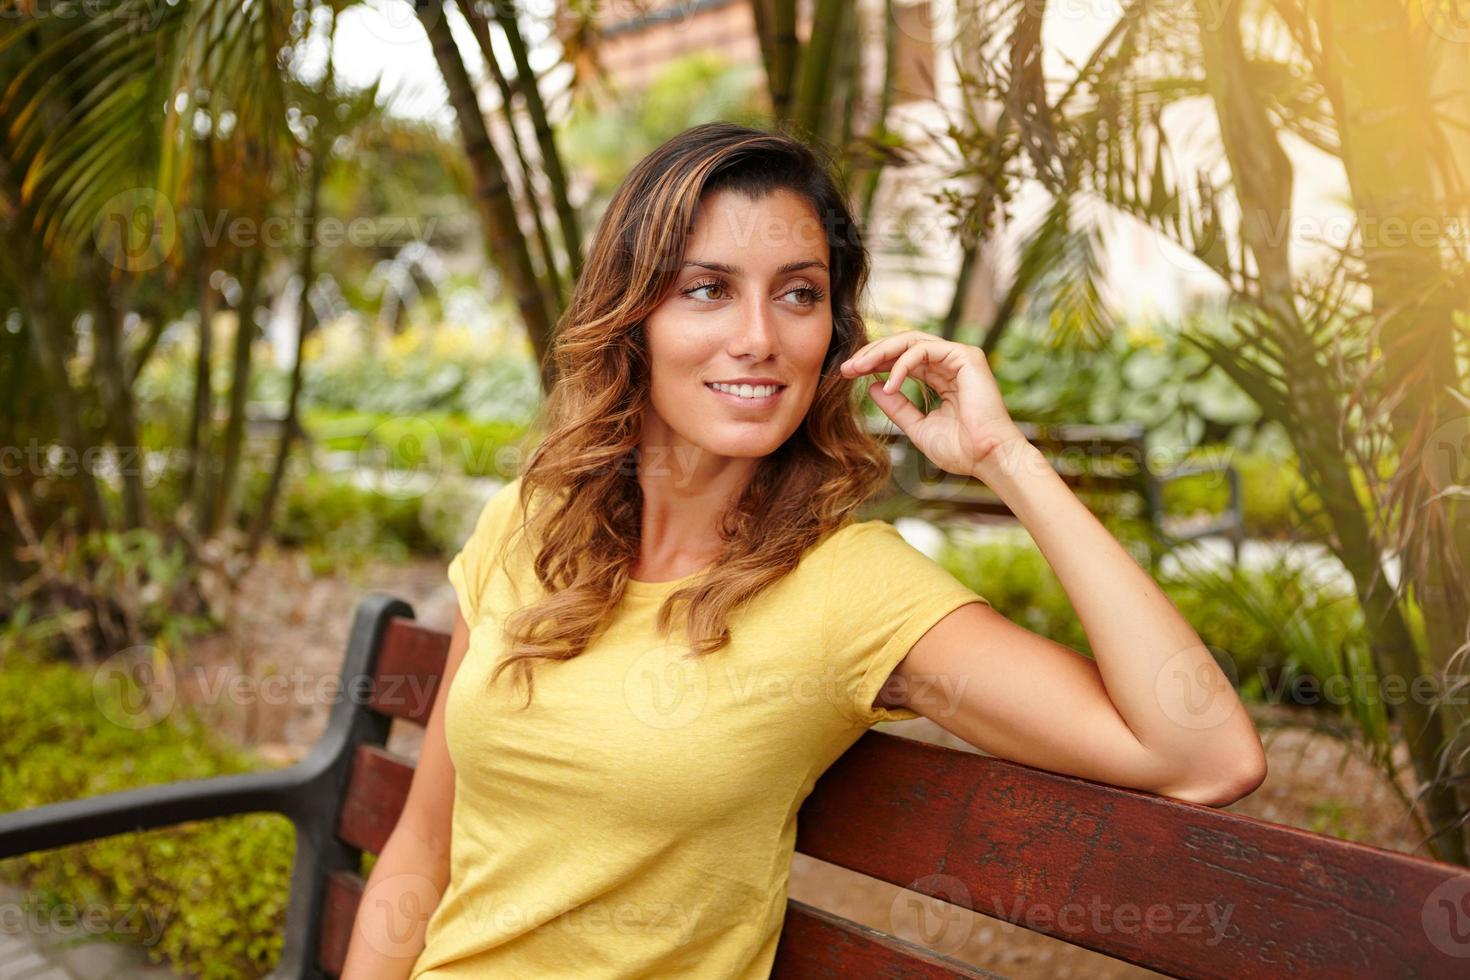 Cheerful lady looking away while sitting on bench photo